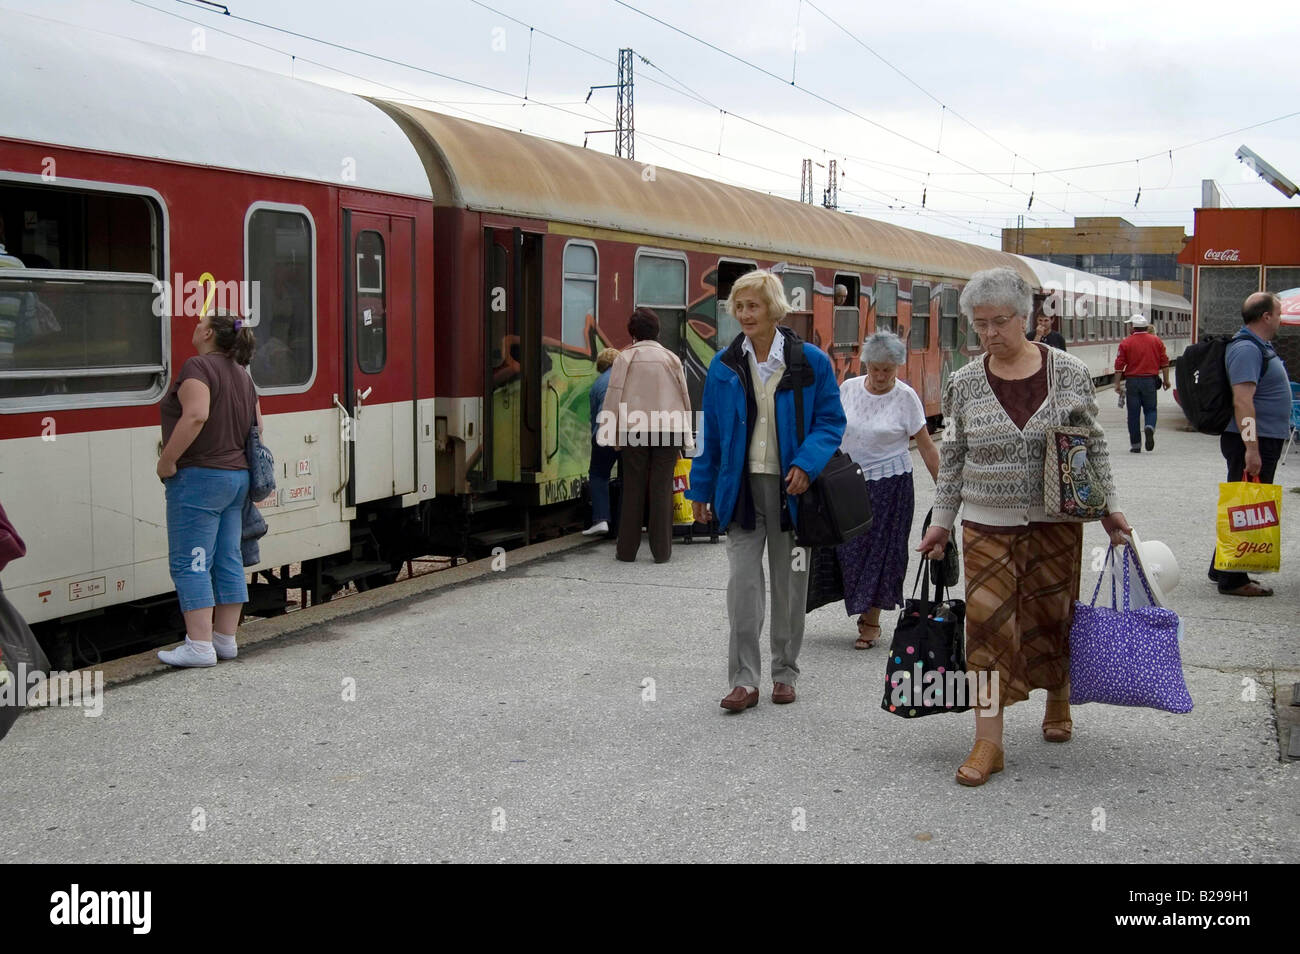 Train from Sofia arrives in Plovdiv Date 20 02 2008 Ref ZB583 110492 0014 COMPULSORY CREDIT World Pictures Photoshot - Stock Image